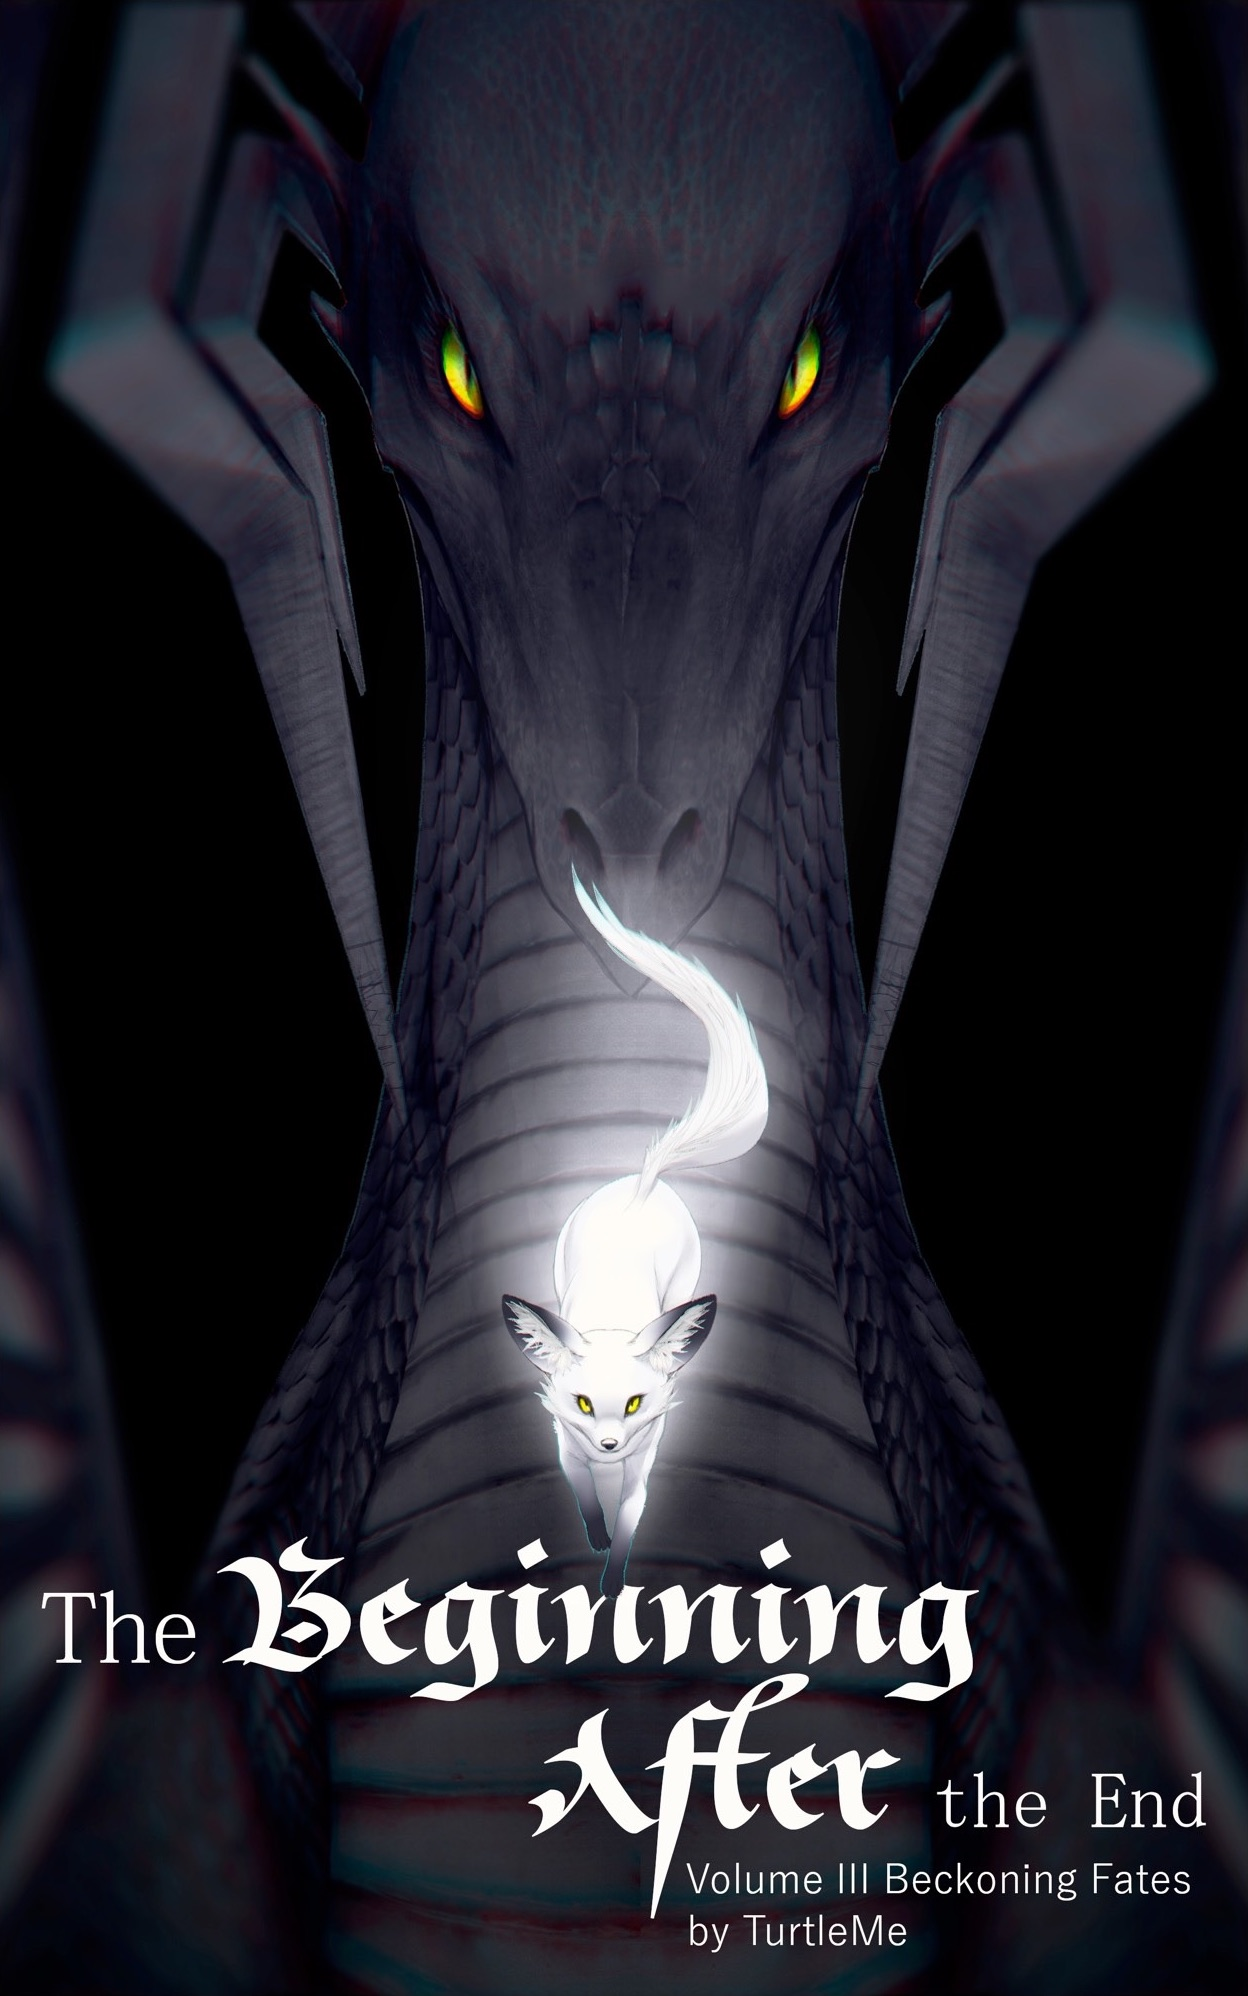 Volumes And Chapters The Beginning After The End Wiki Fandom Free chapters of the beginning after the end manga. the beginning after the end wiki